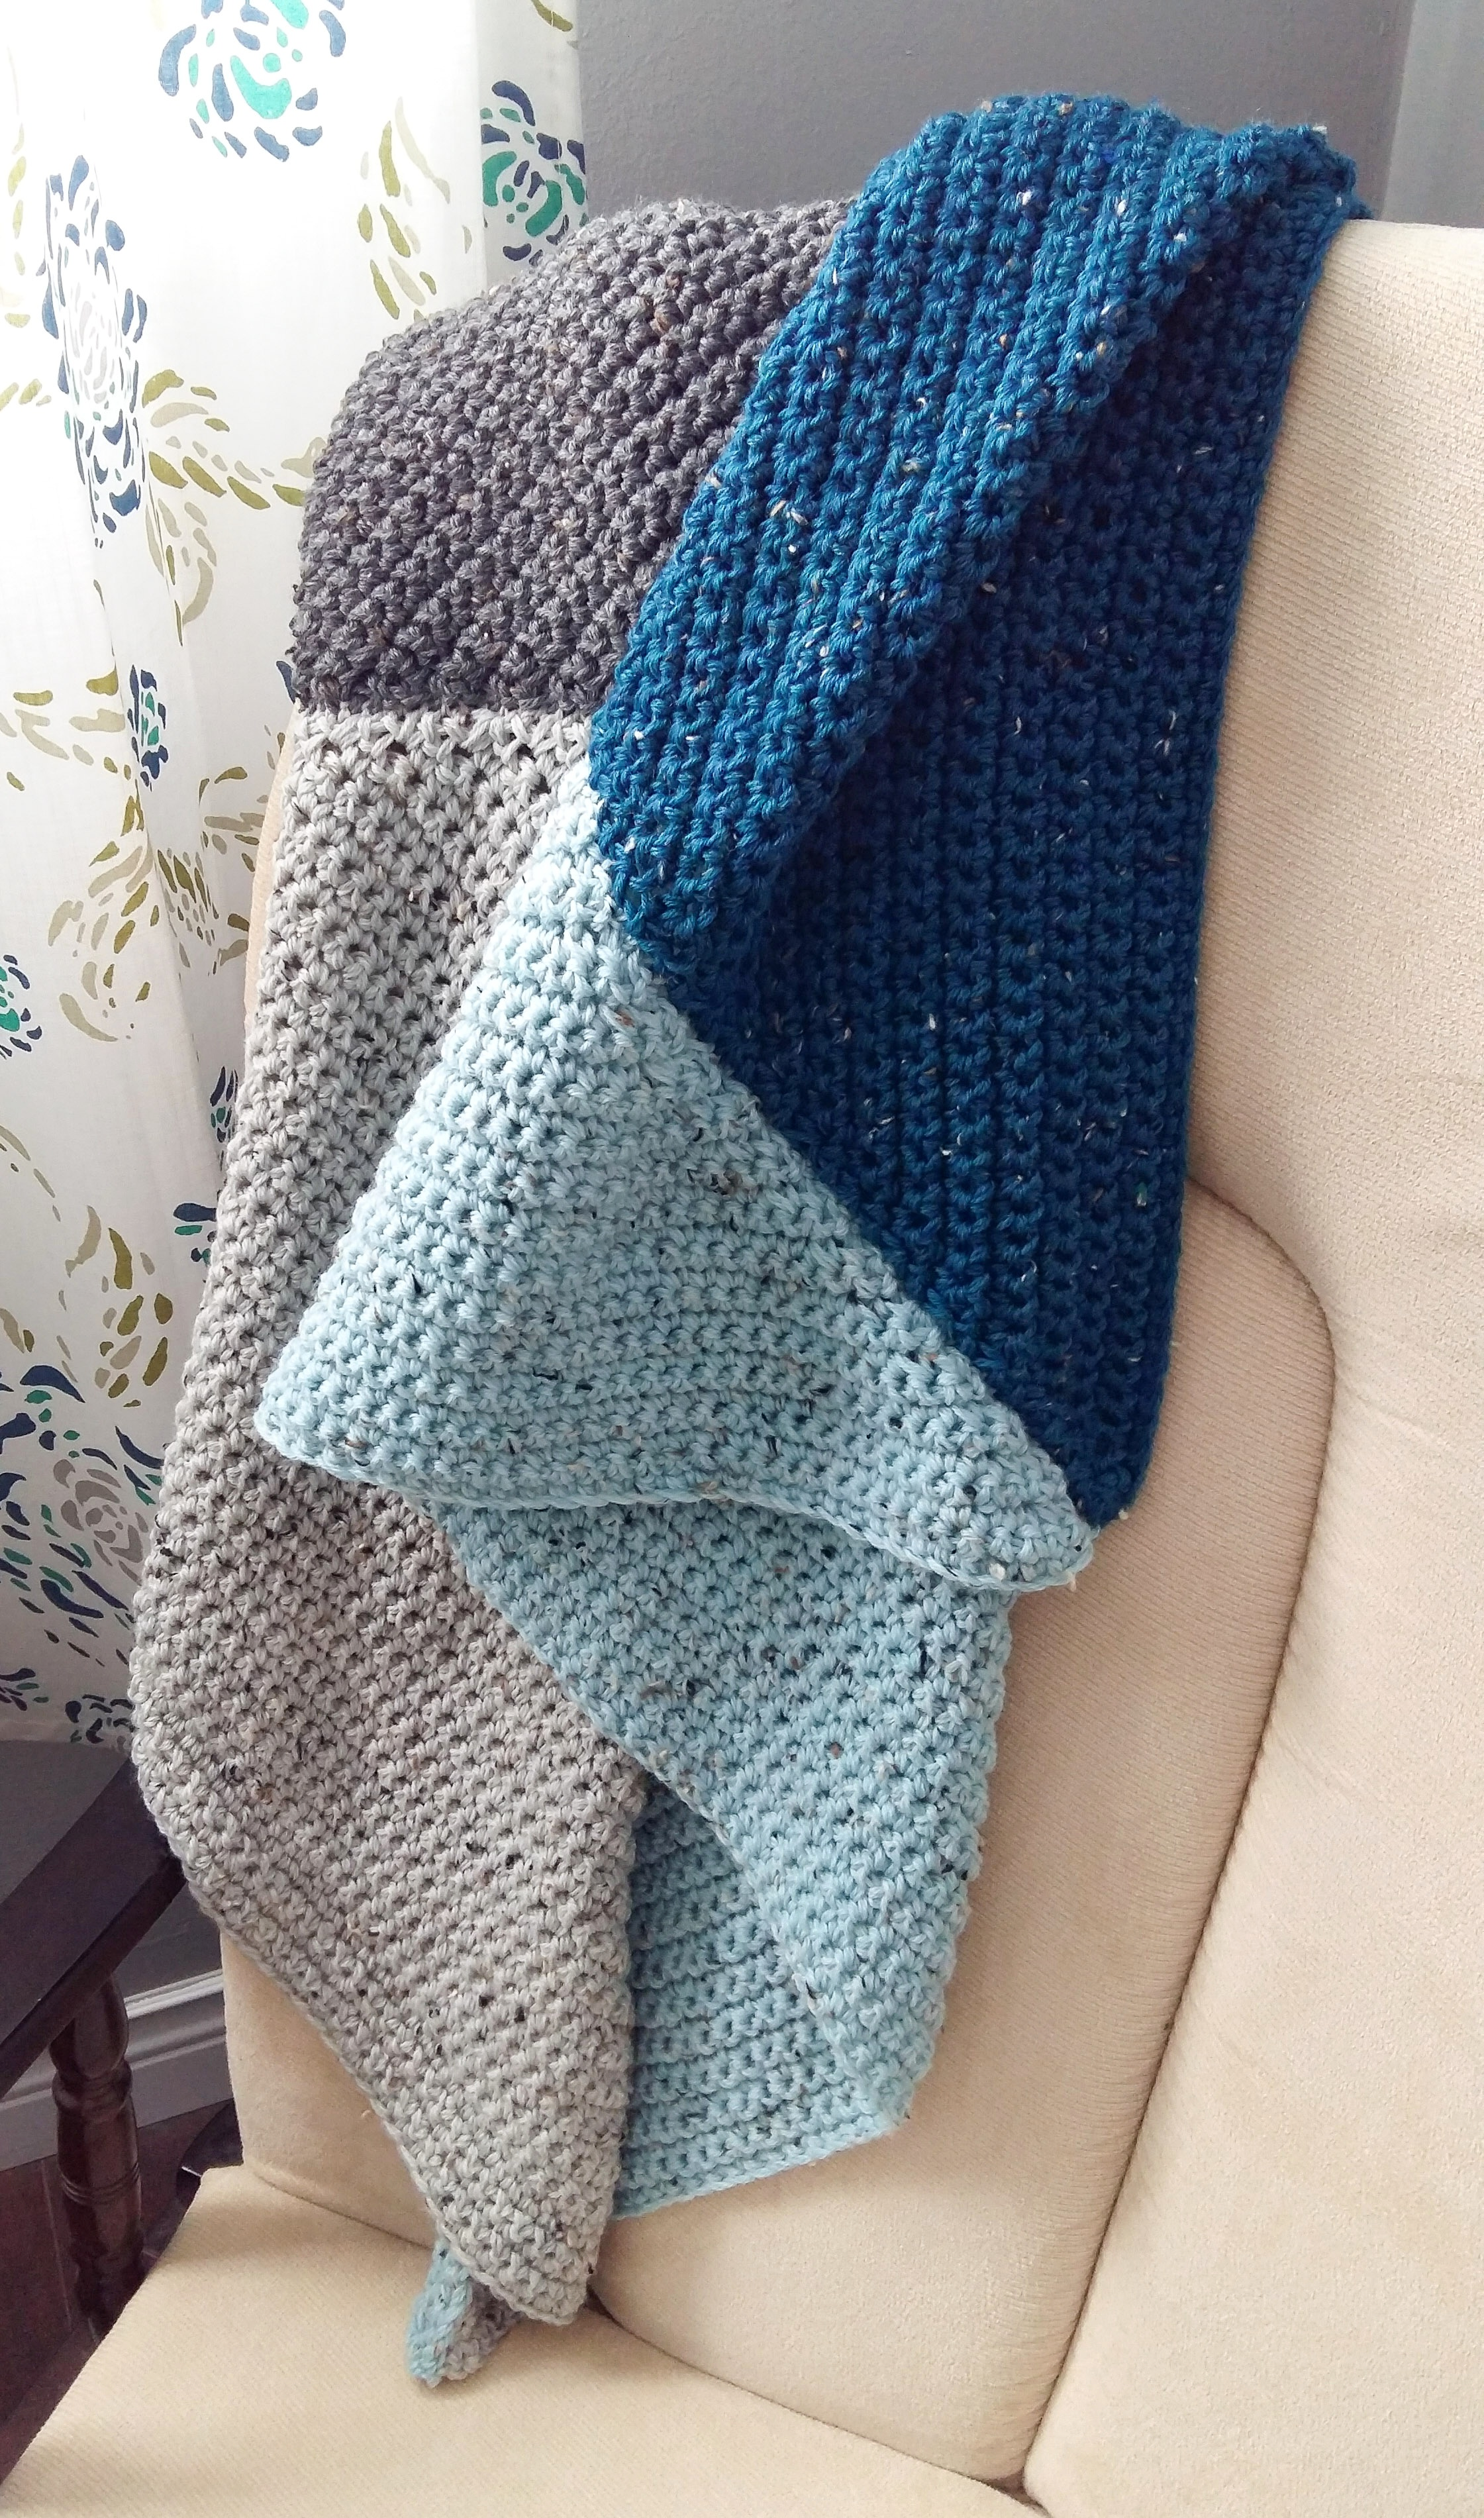 Simple crochet blanket tutorial. Make a beautiful blanket for a precious little loved one.